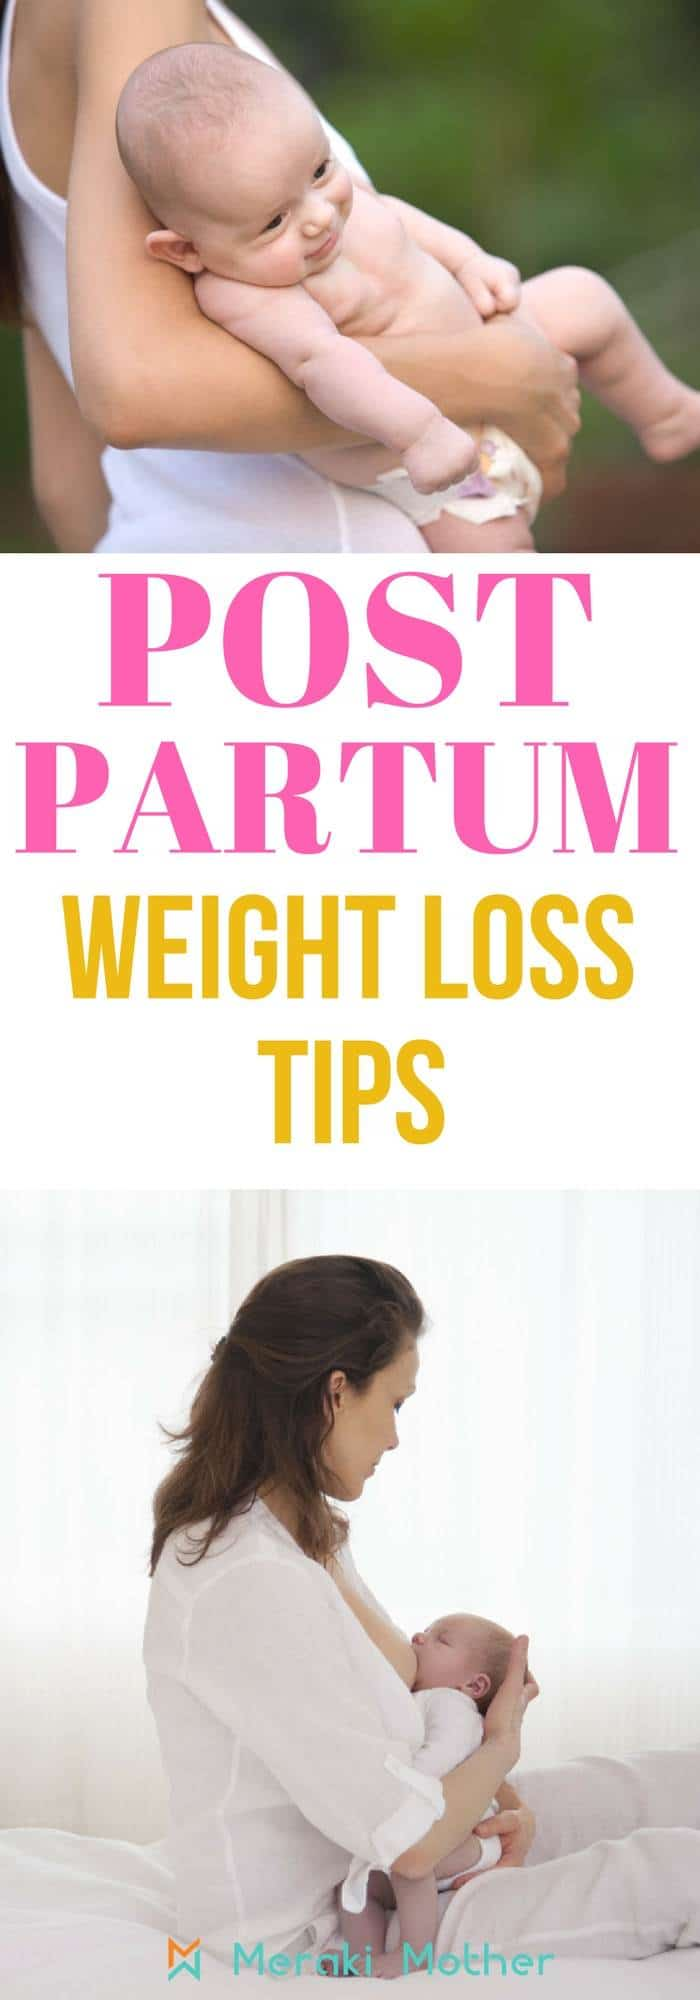 Pospartum weight loss tips for moms who have had a C section. postpartum weightloss, postpartum weightloss before and after, postpartum weightloss breastfeeding, postpartum weightloss diet, postpartum weightloss first 6 weeks.